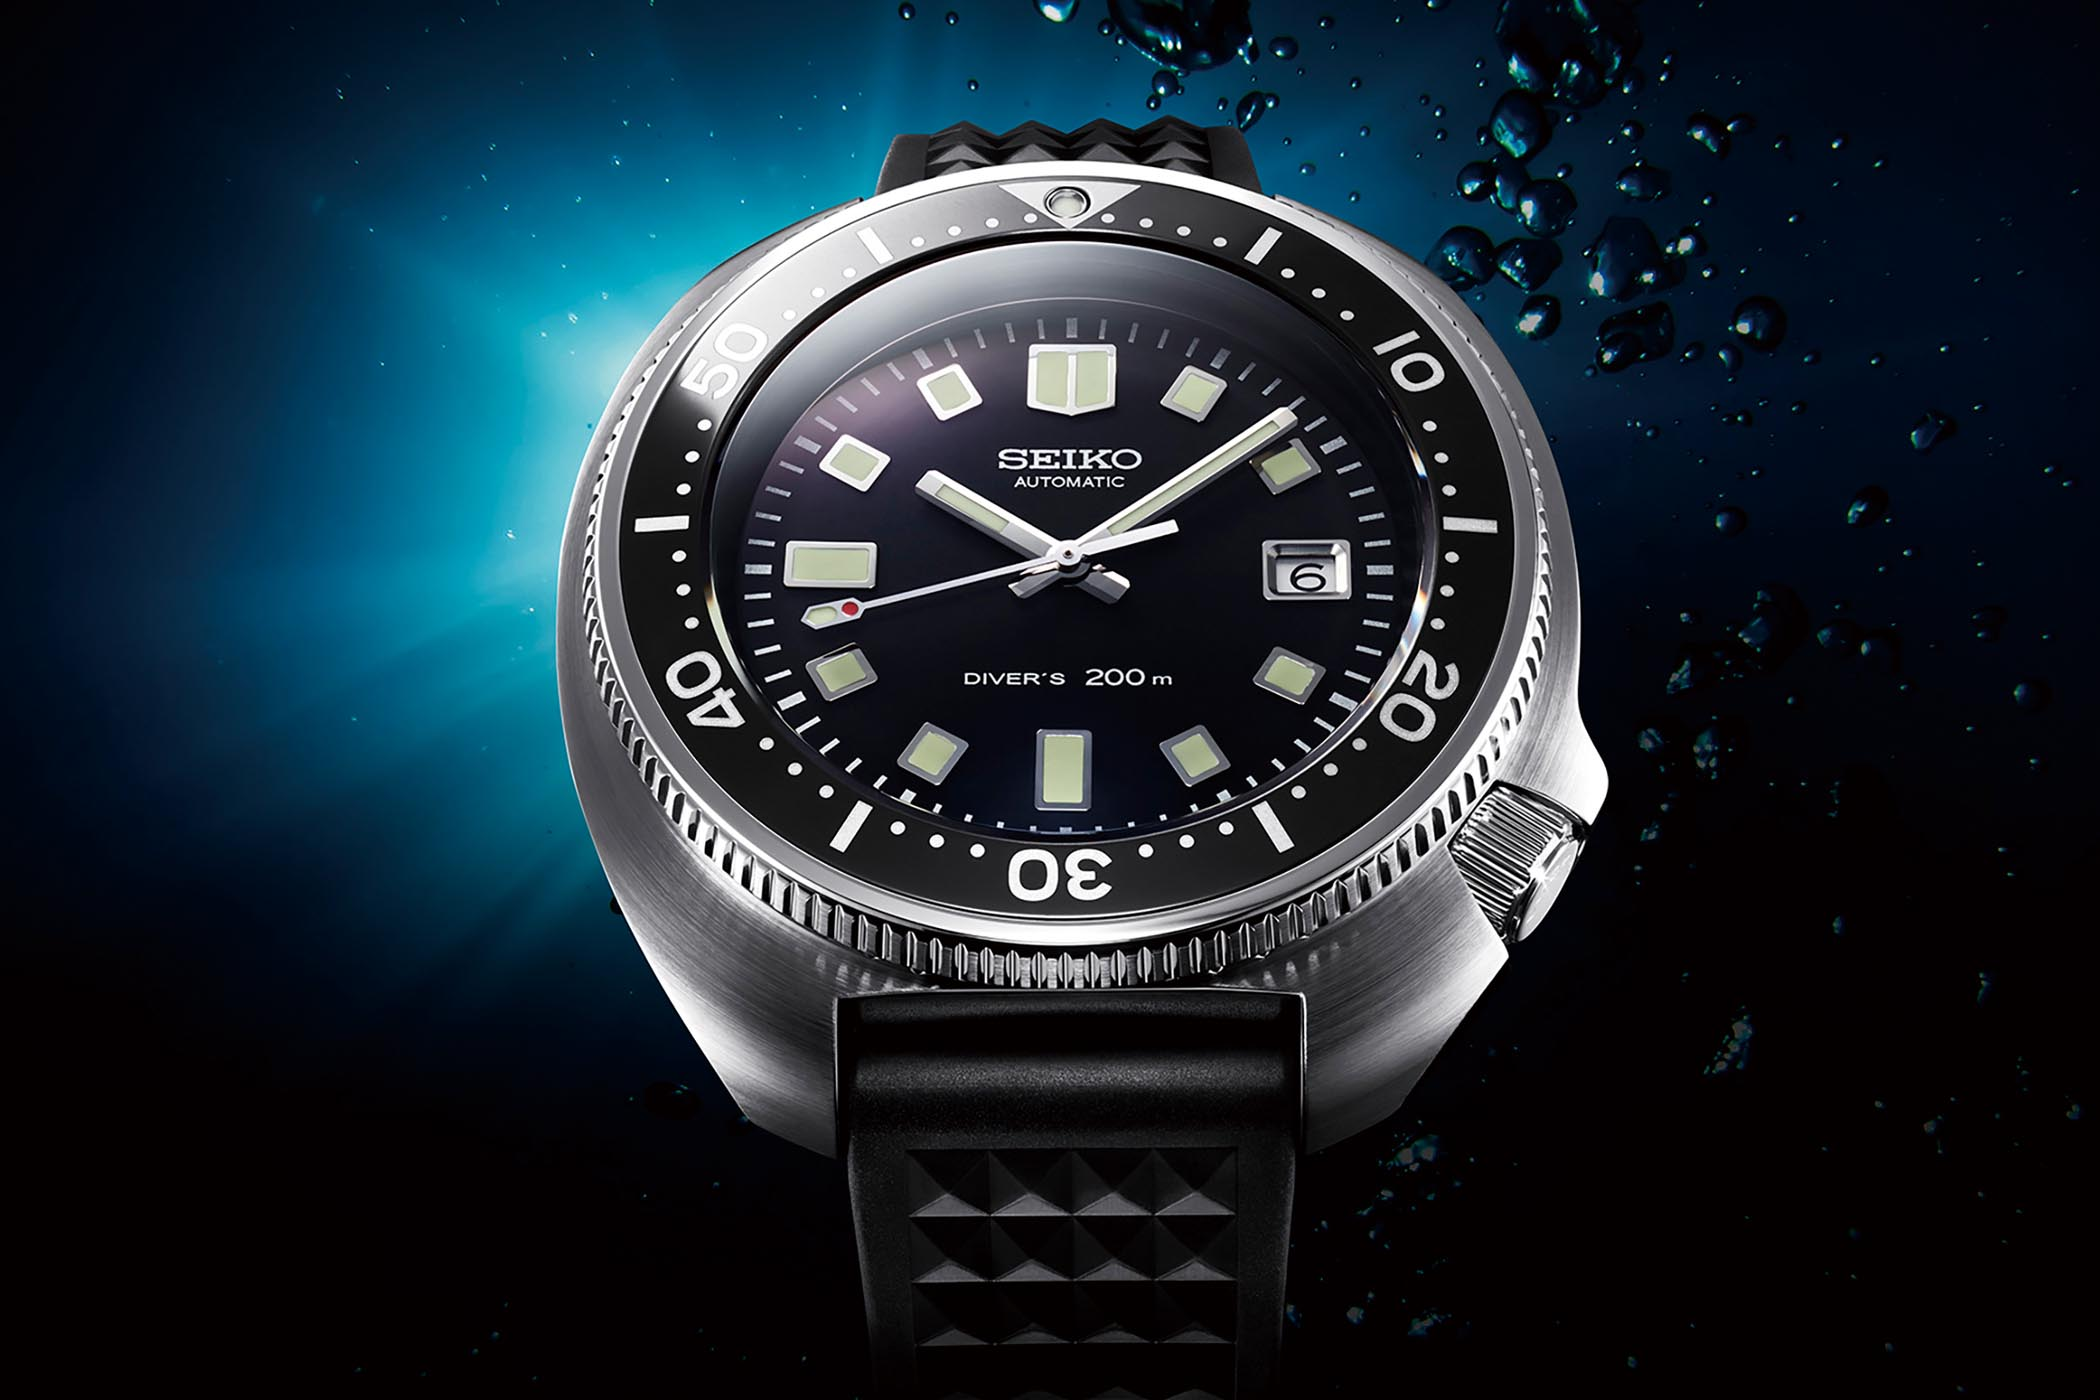 Baselworld 2019: Seiko 1970 Diver's Re-Creation Limited Edition SLA033 Watch